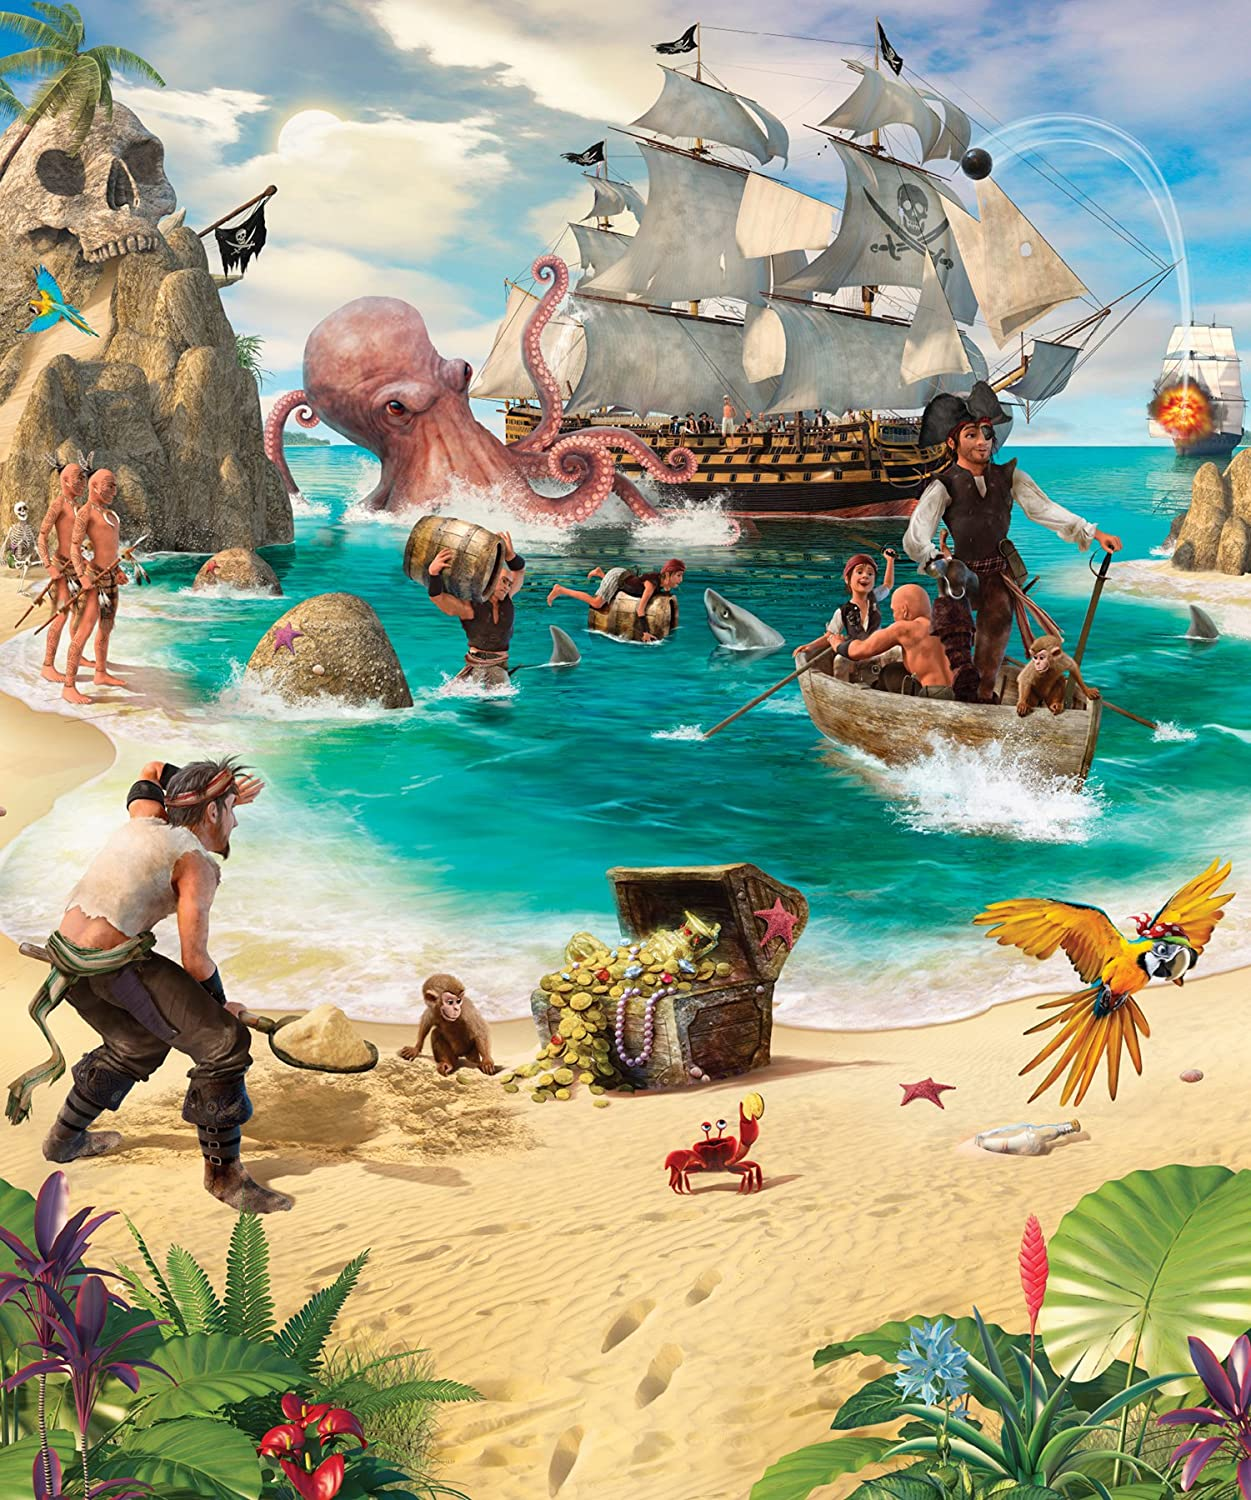 Walltastic Pirate and Treasure Adventure Wall Mural